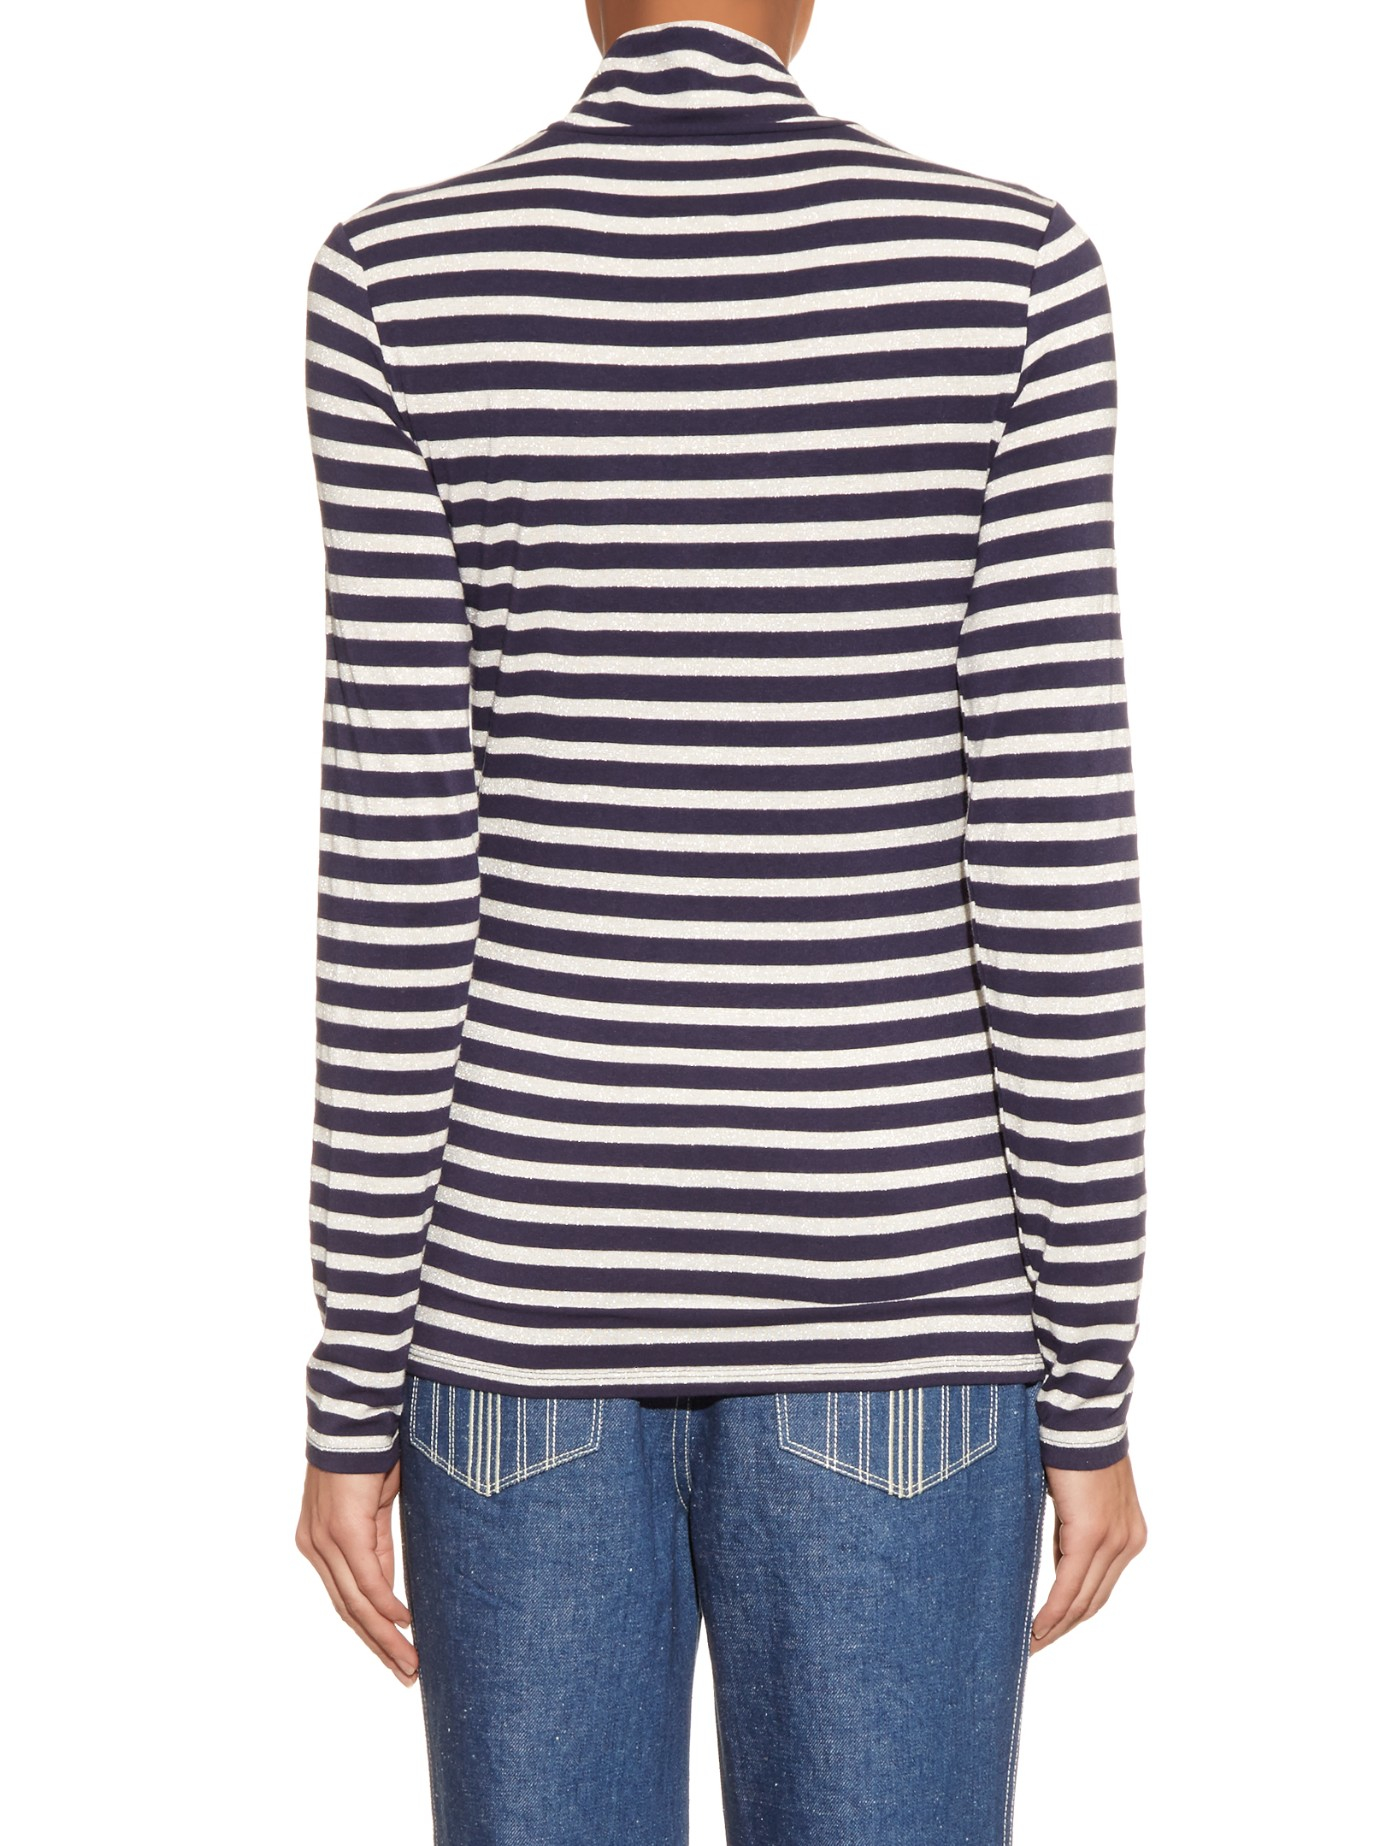 Lyst Trademark Striped Roll Neck Long Sleeved Sweater In